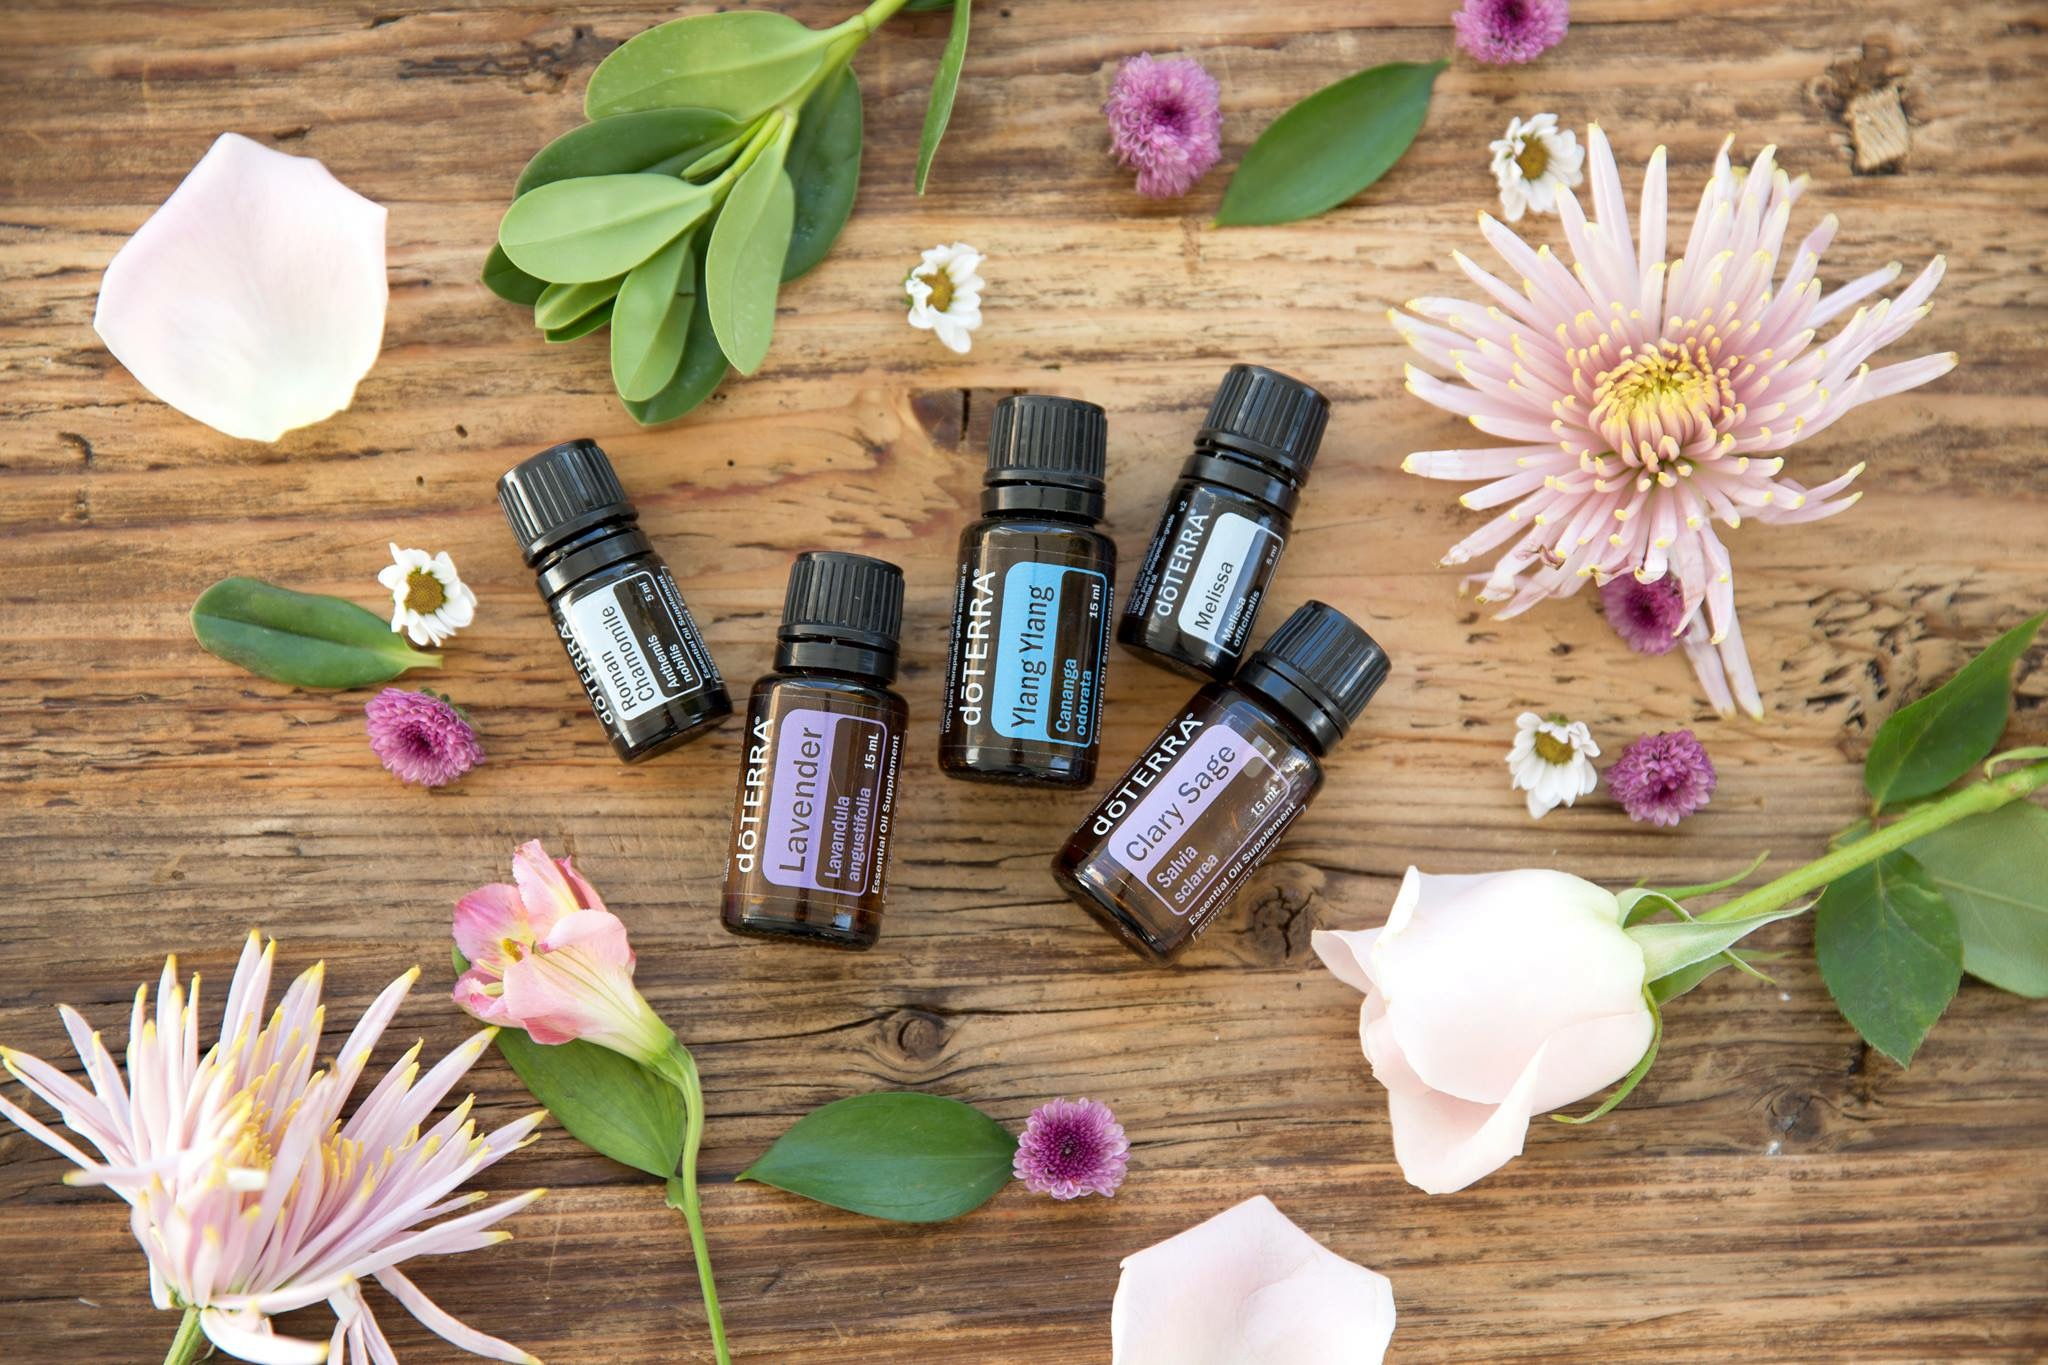 The Brand - Learn why My Heart loves doTERRA